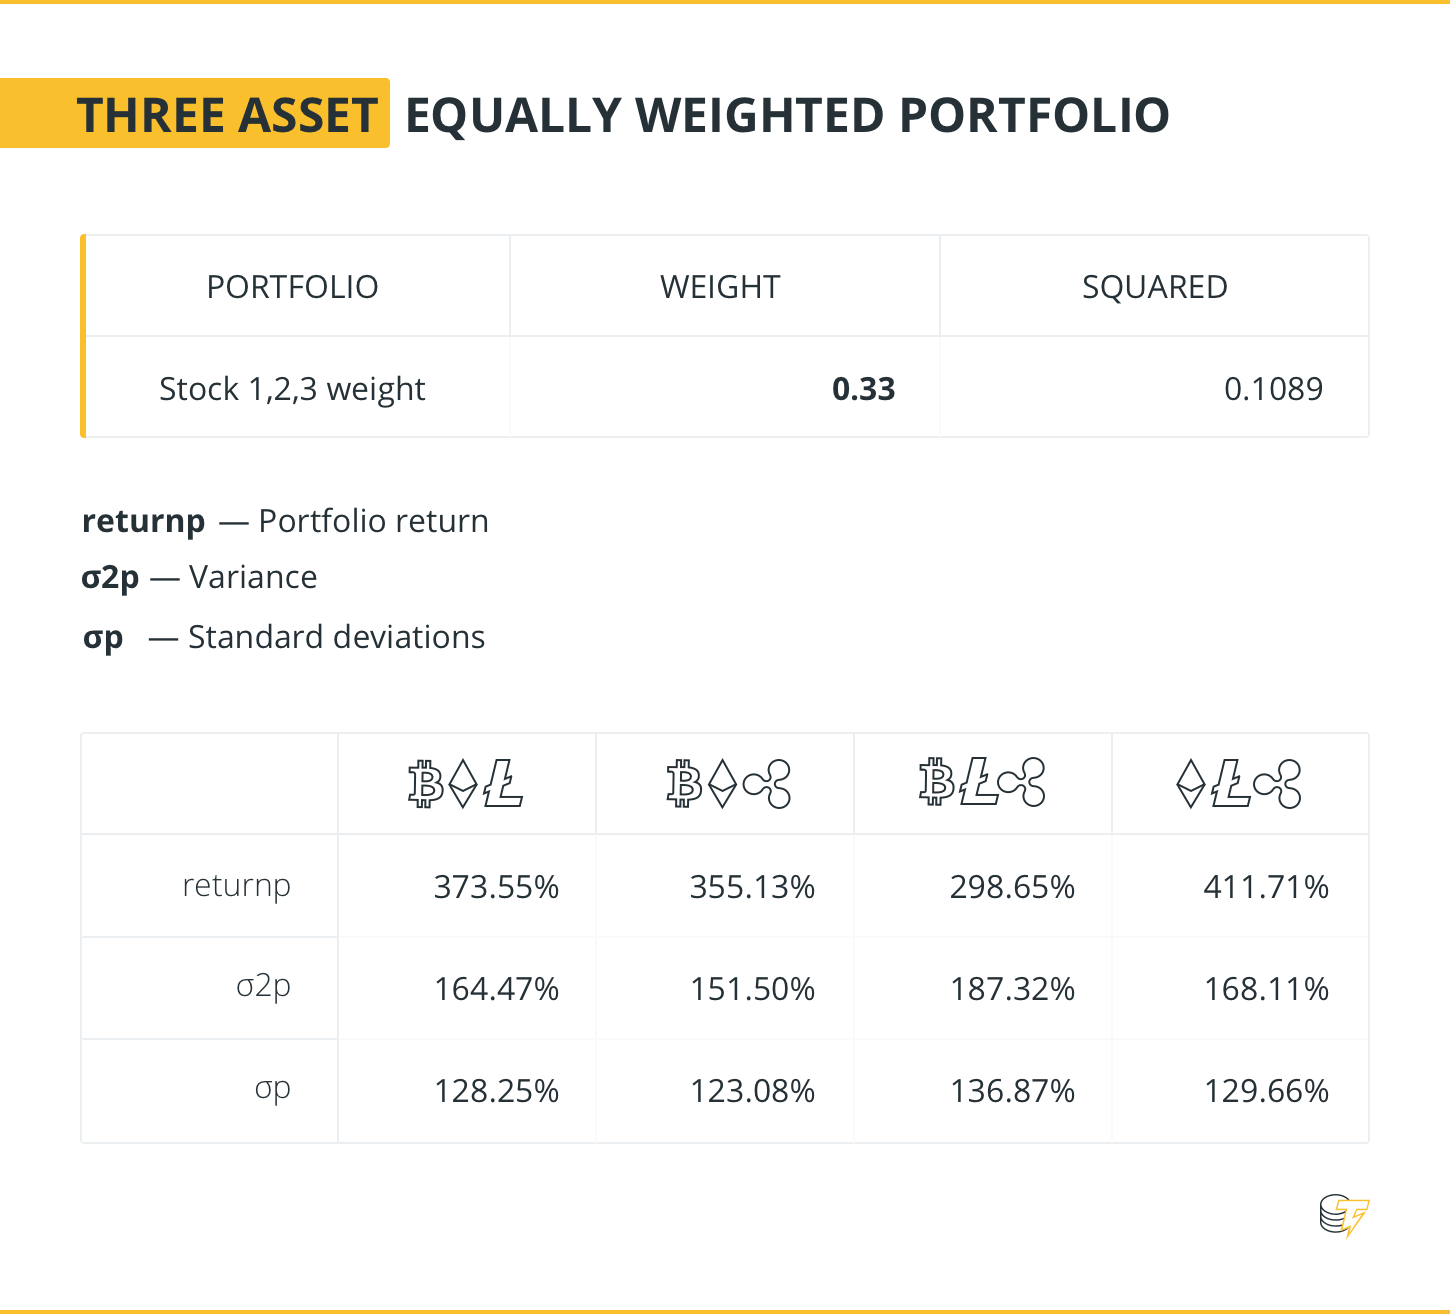 THREE ASSET EQUALLY WEIGHTED PORTFOLIO